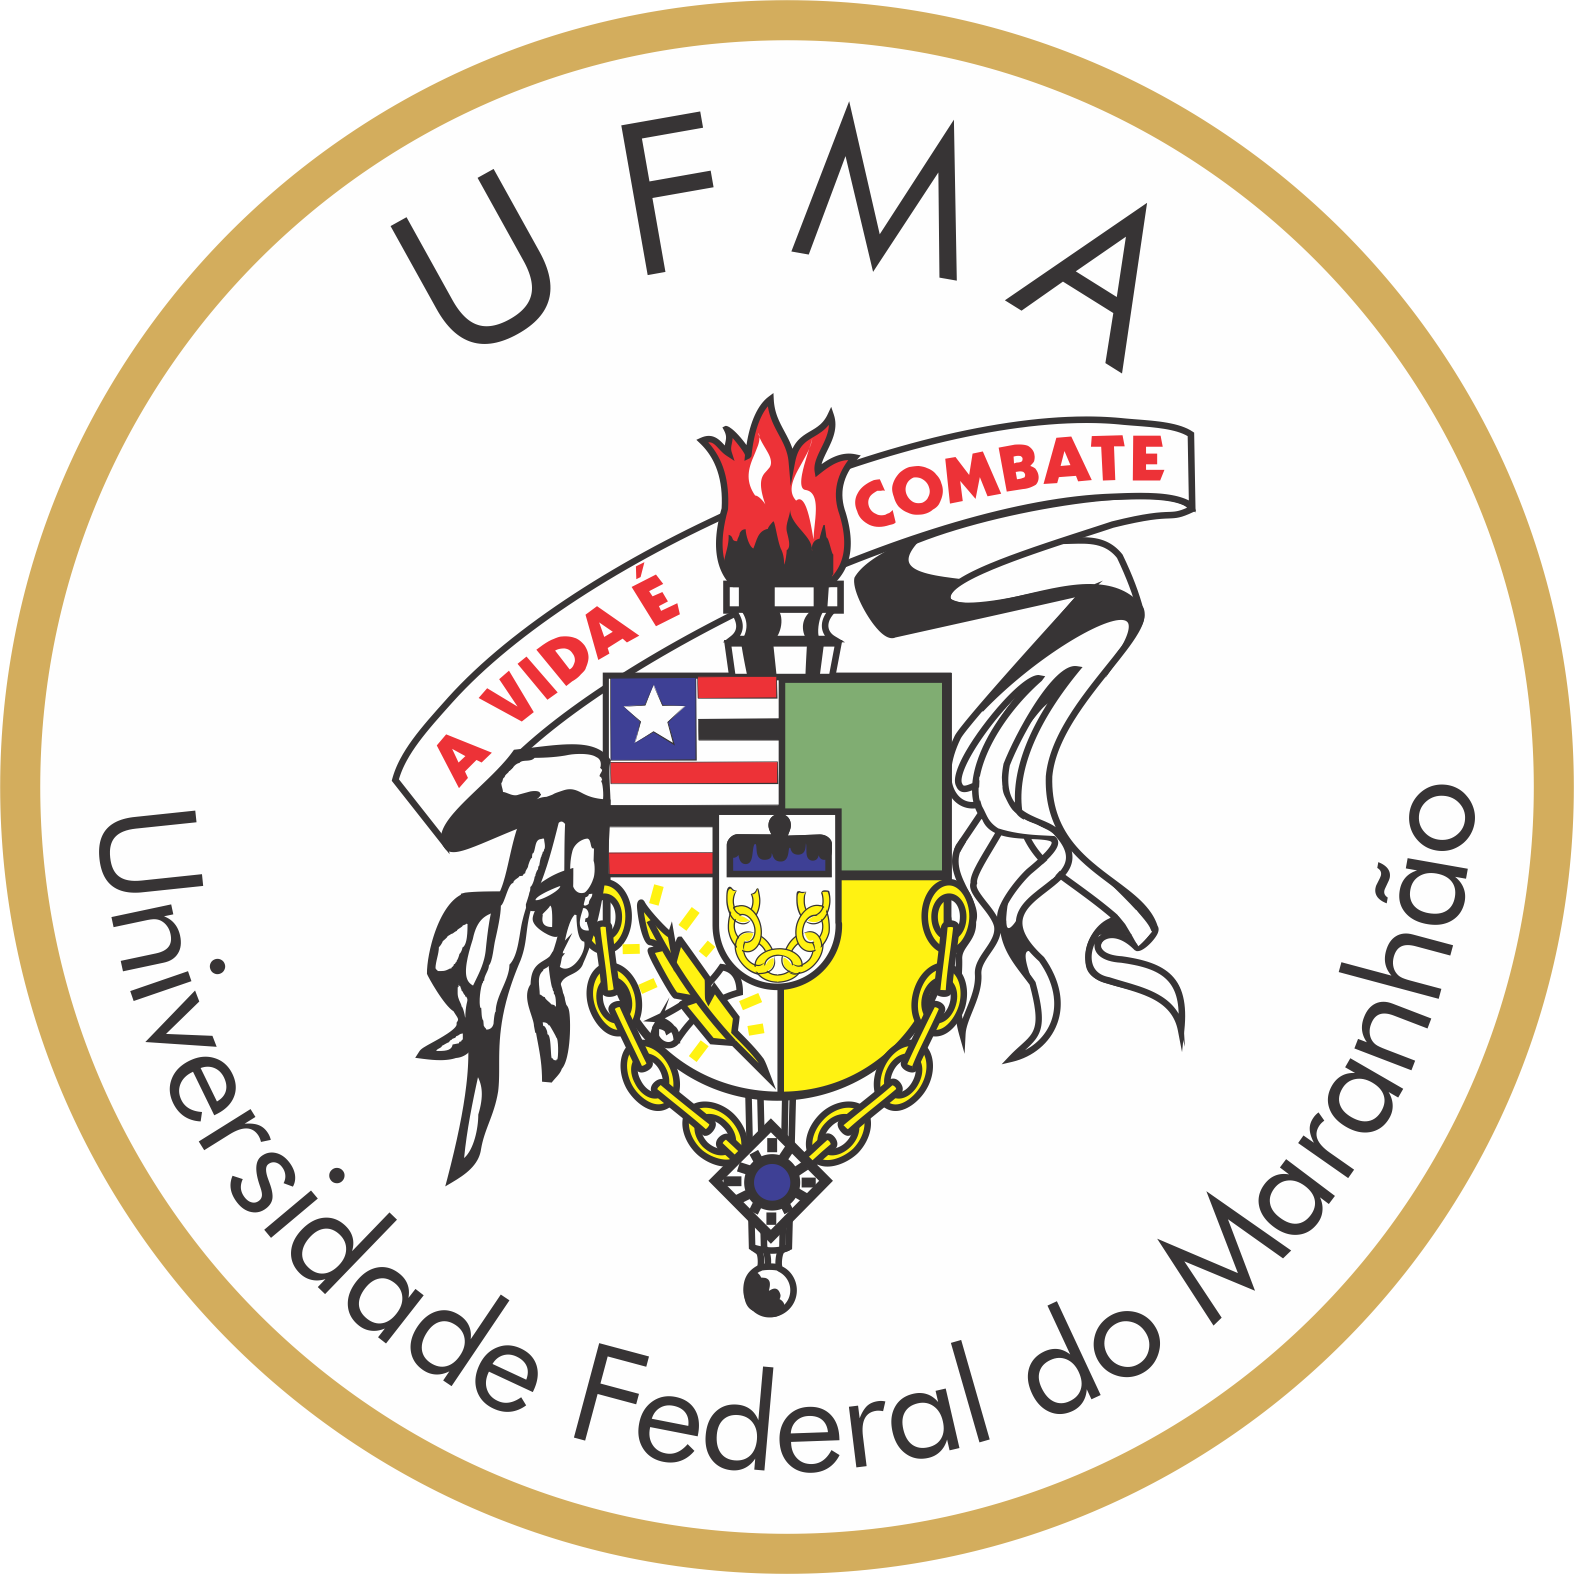 universidade-federal-do-maranhao-ufma